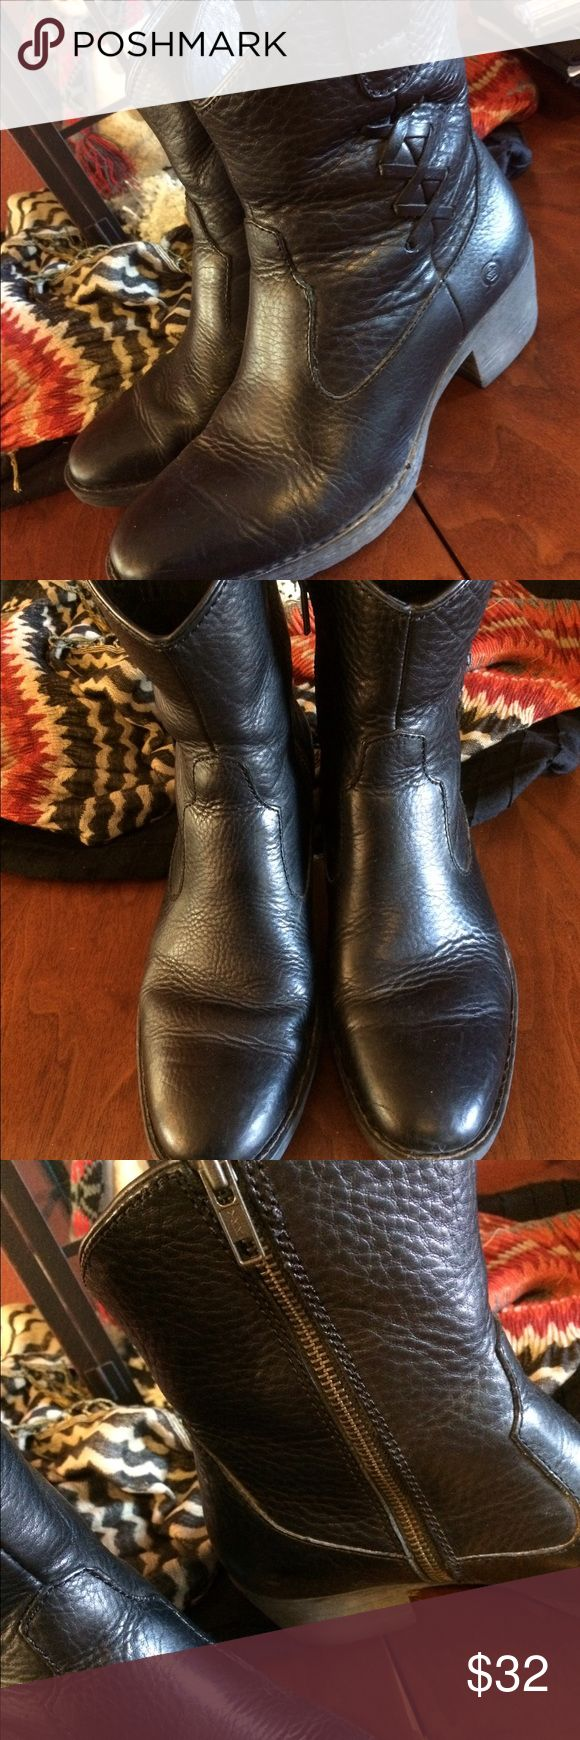 """BORN Boots Sz 7 1/2 BORN Boots. 8"""" shaft. Good condition. Born Shoes Ankle Boots & Booties"""